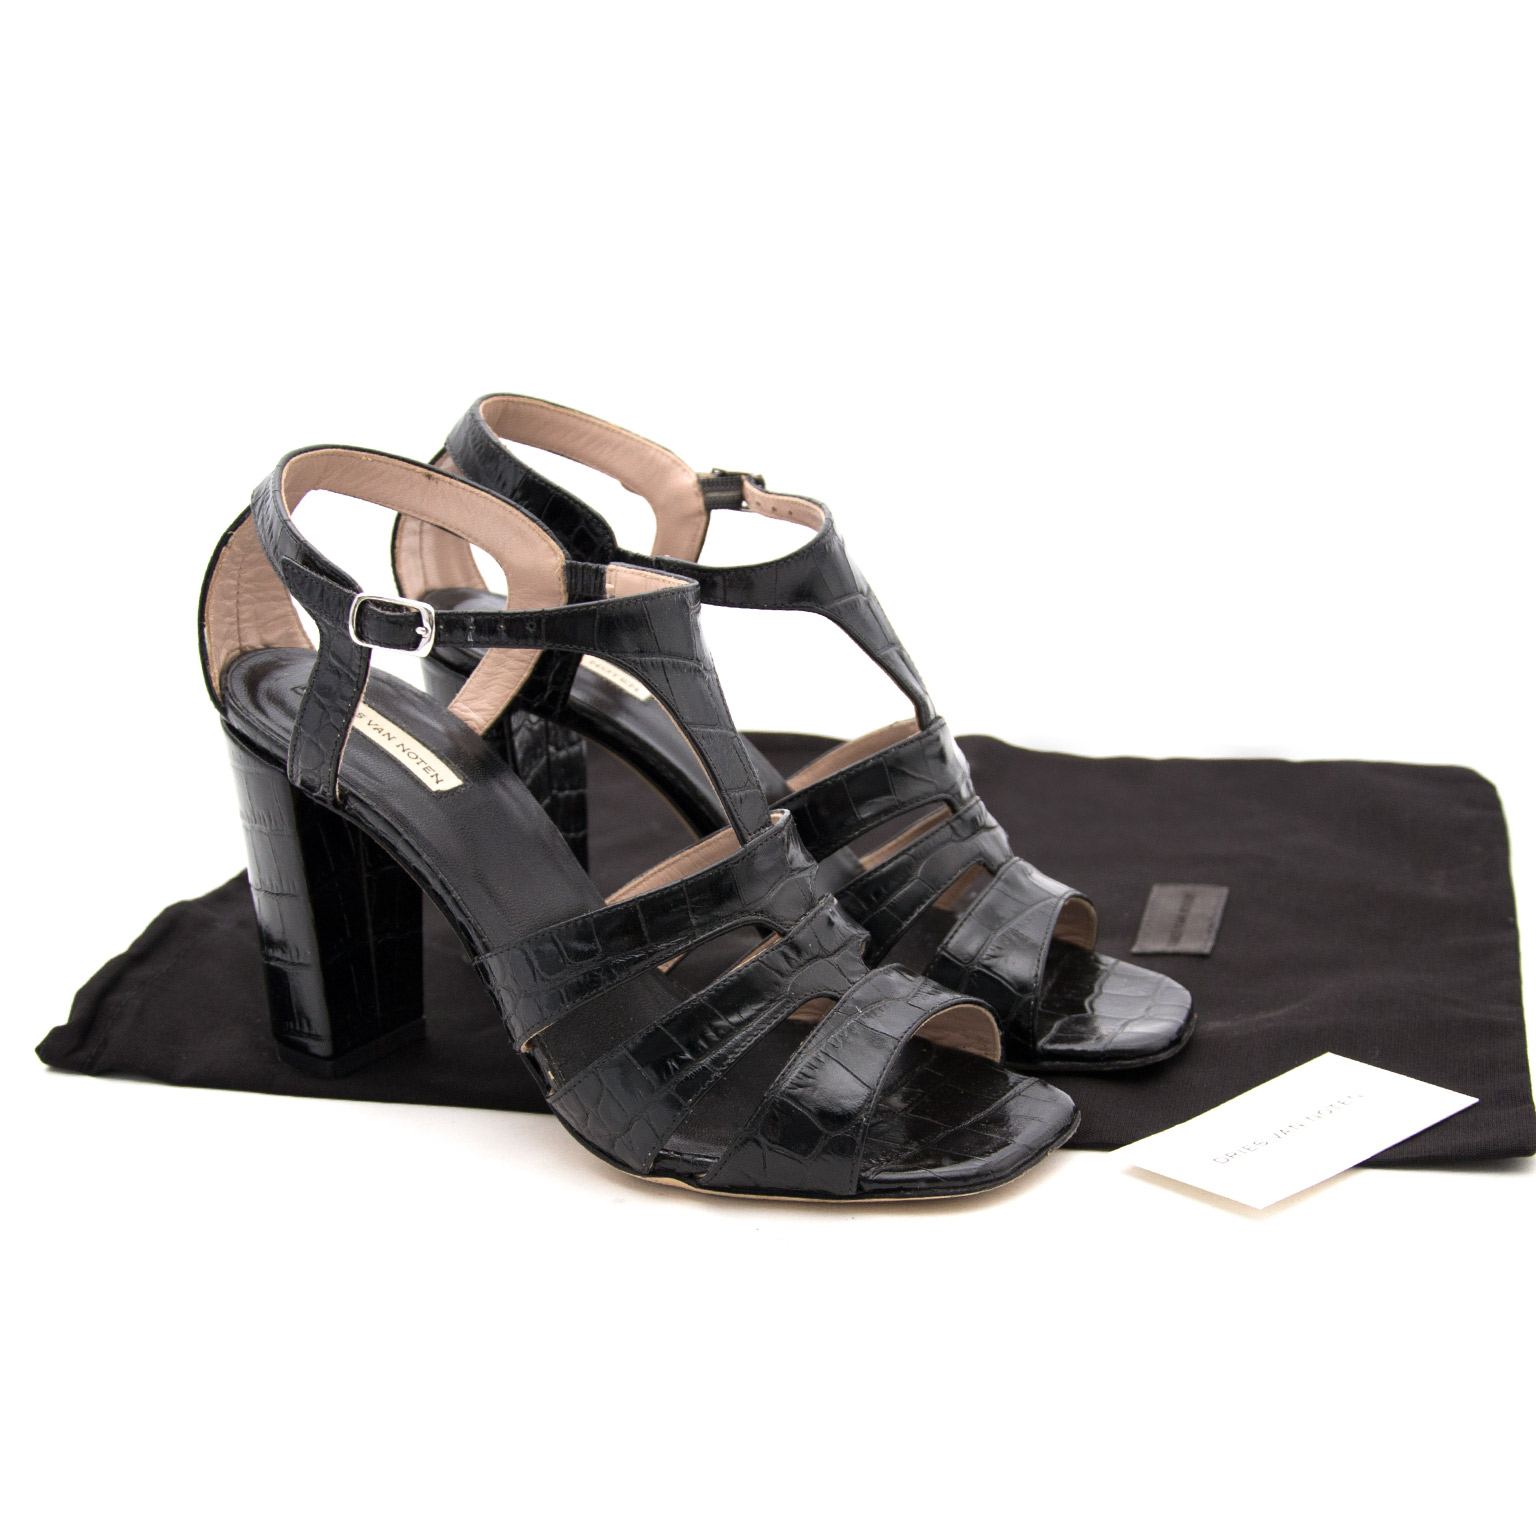 Buy safe and secure online at labellov.com Dries Van Noten Black Sandal Heels